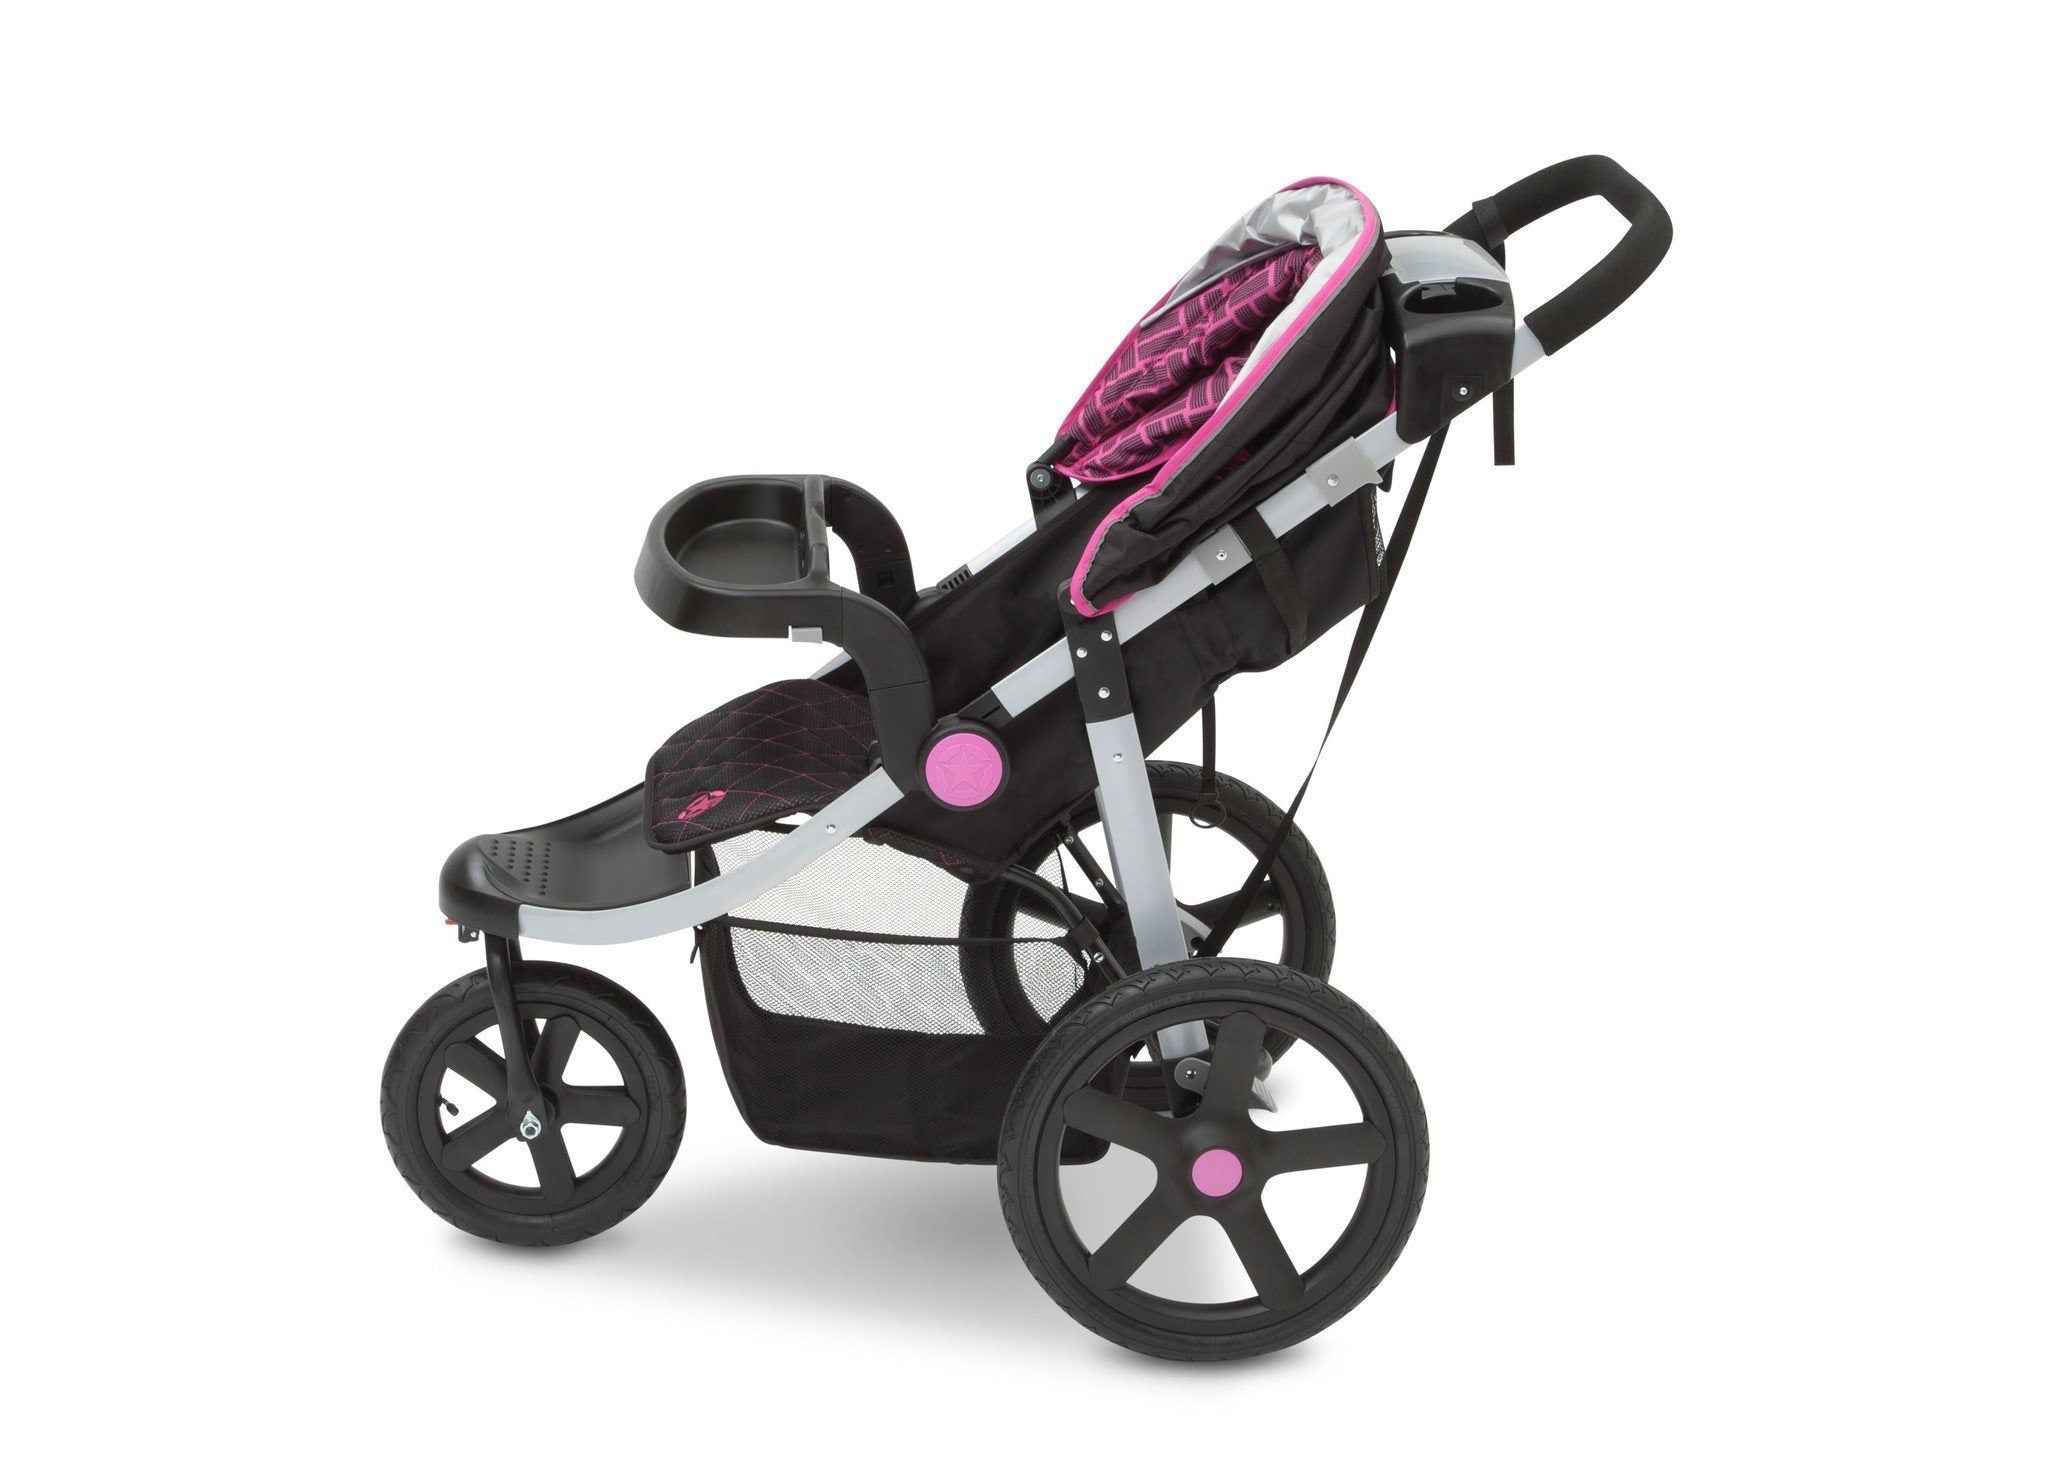 Jeep Adventure All Terrain Jogger Stroller by Delta Children, Berry Tracks (678), with multi-position reclining seat